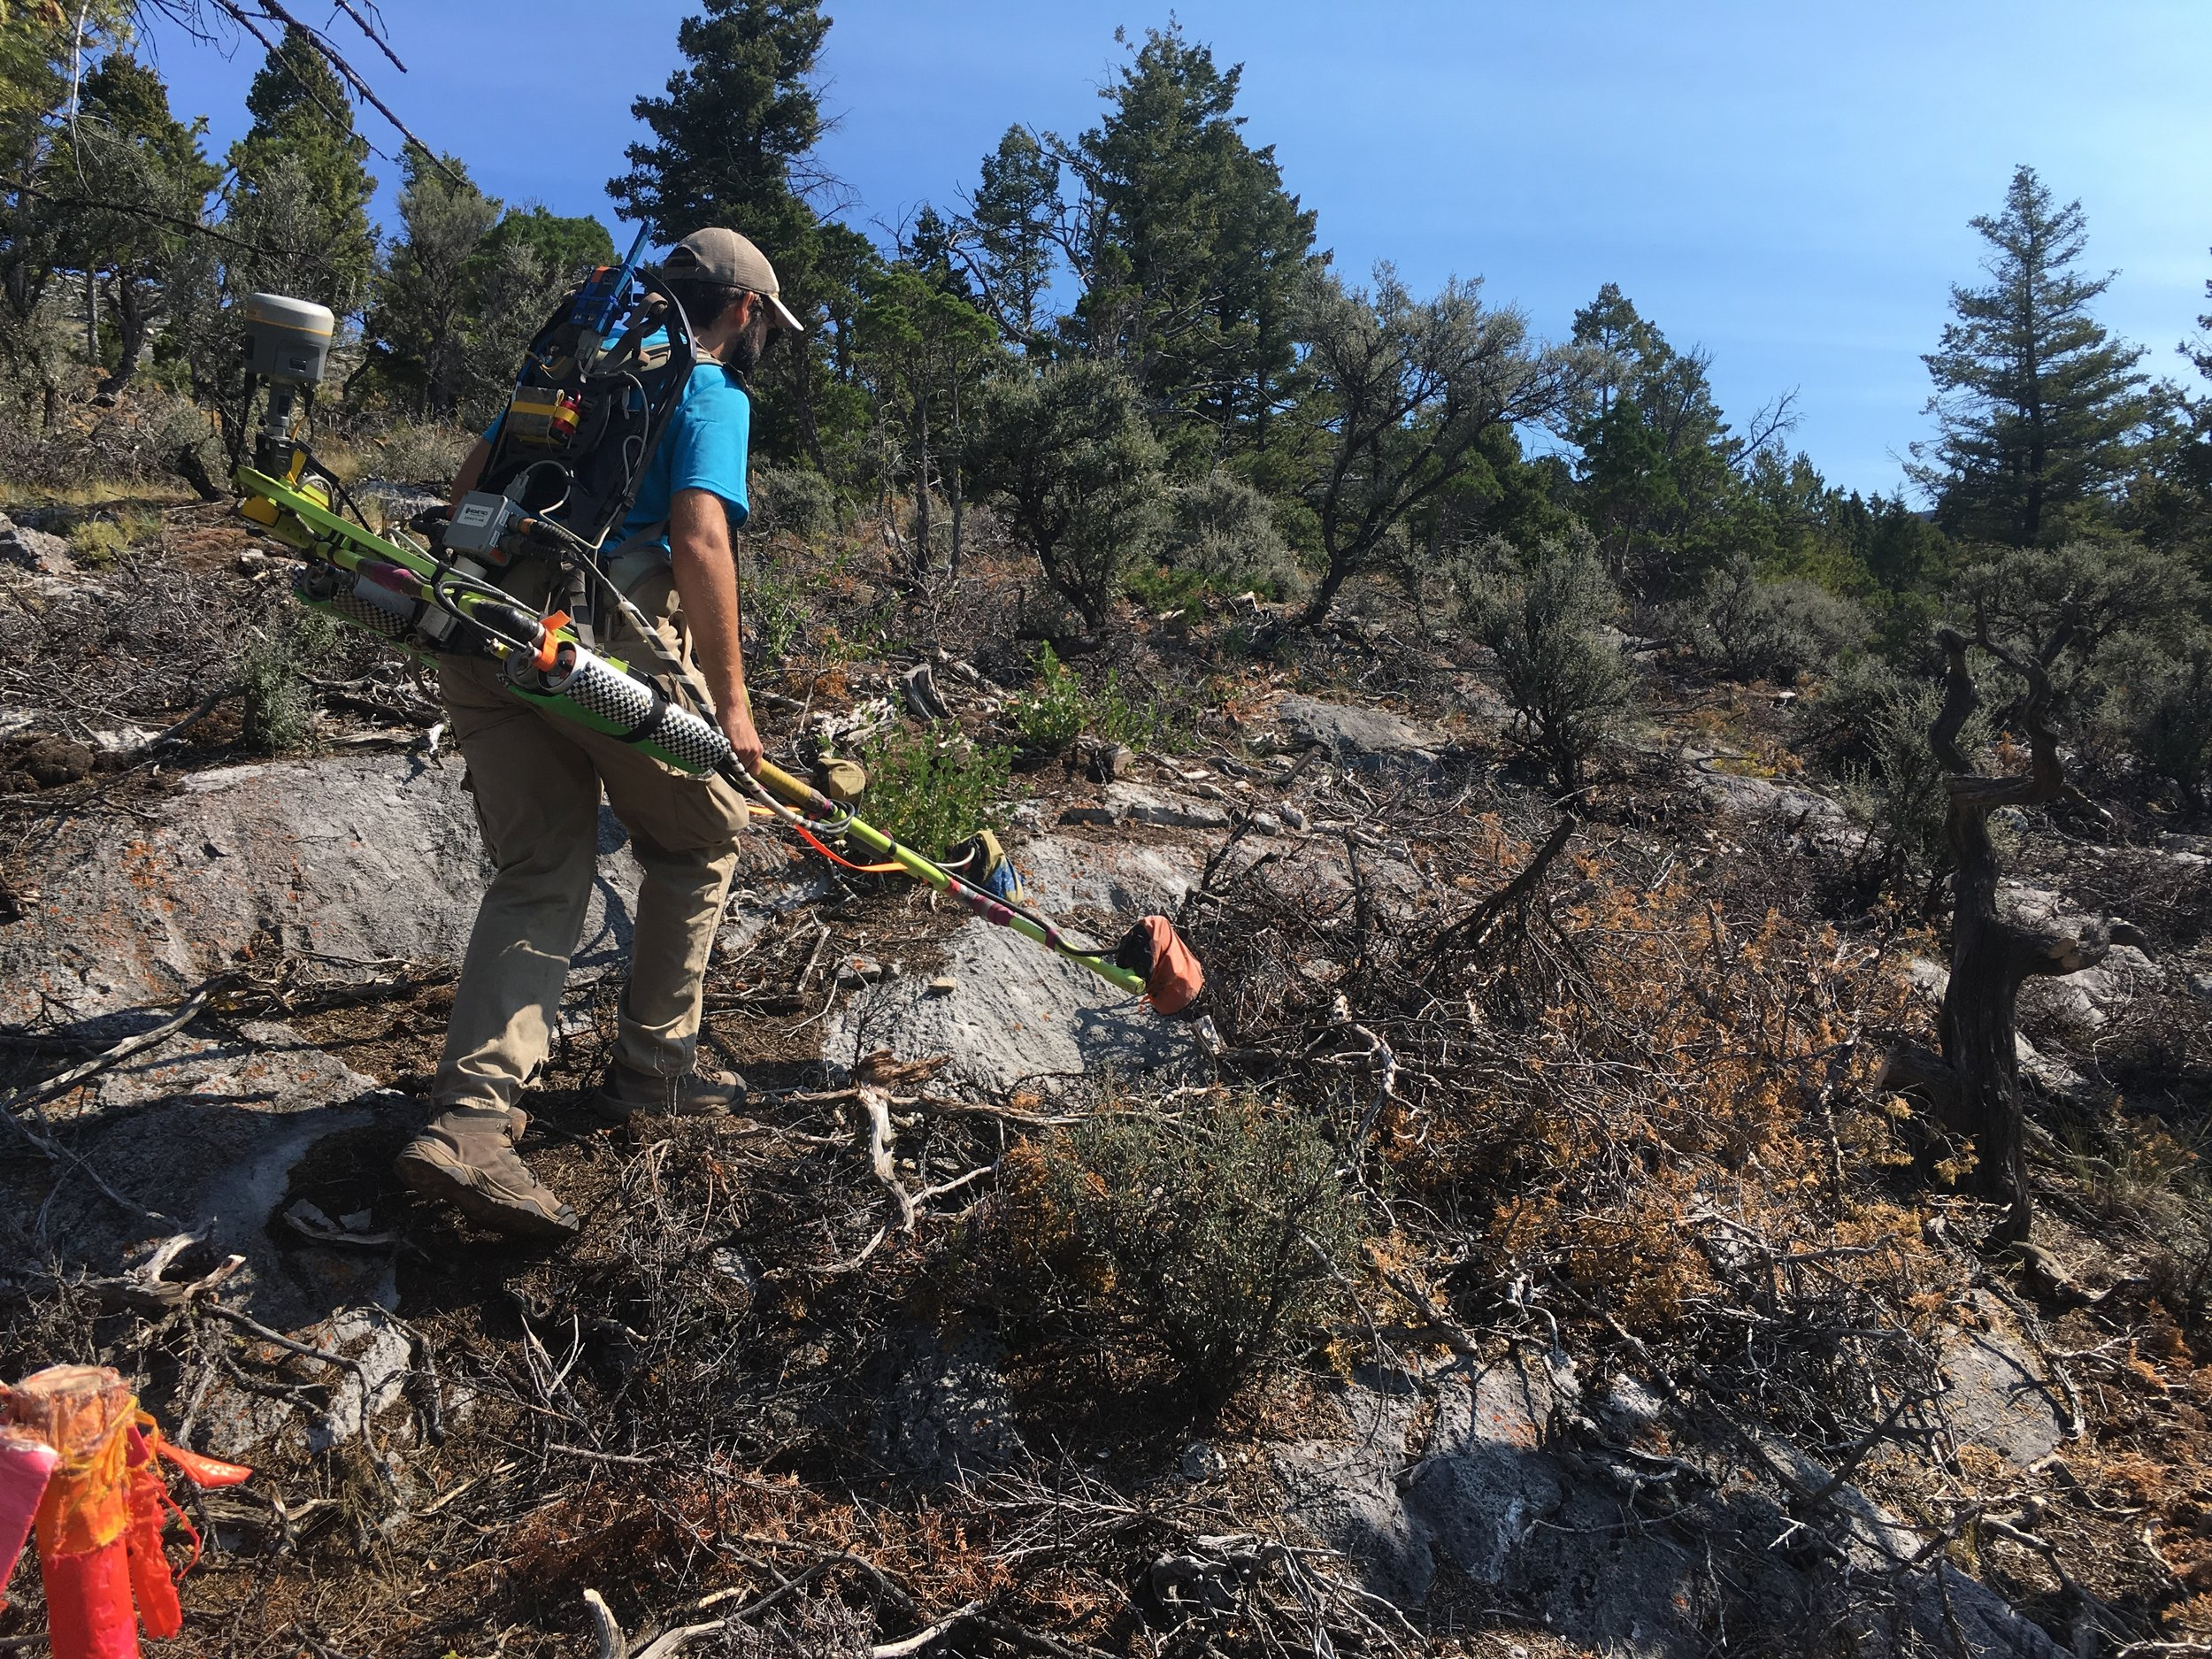 Scott conducts a magnetic survey in the rugged terrain of the Limestone Hills, near Townsend, MT to locate UXO.